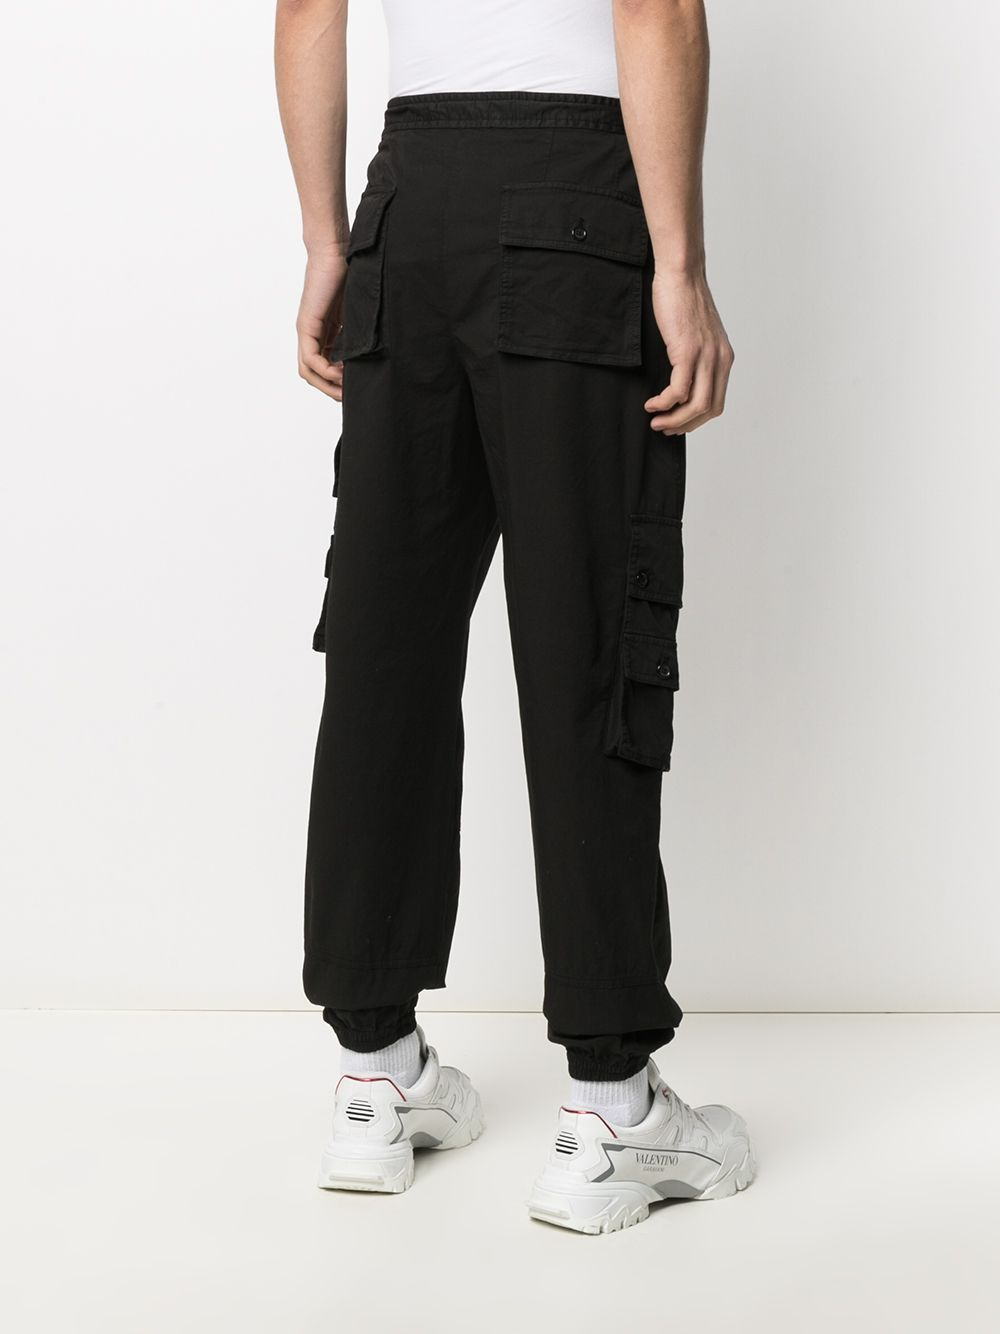 Black cotton cargo pants featuring Dolce & Gabbana logo patch to the side DOLCE & GABBANA |  | GWBZHT-G8DS4N0000